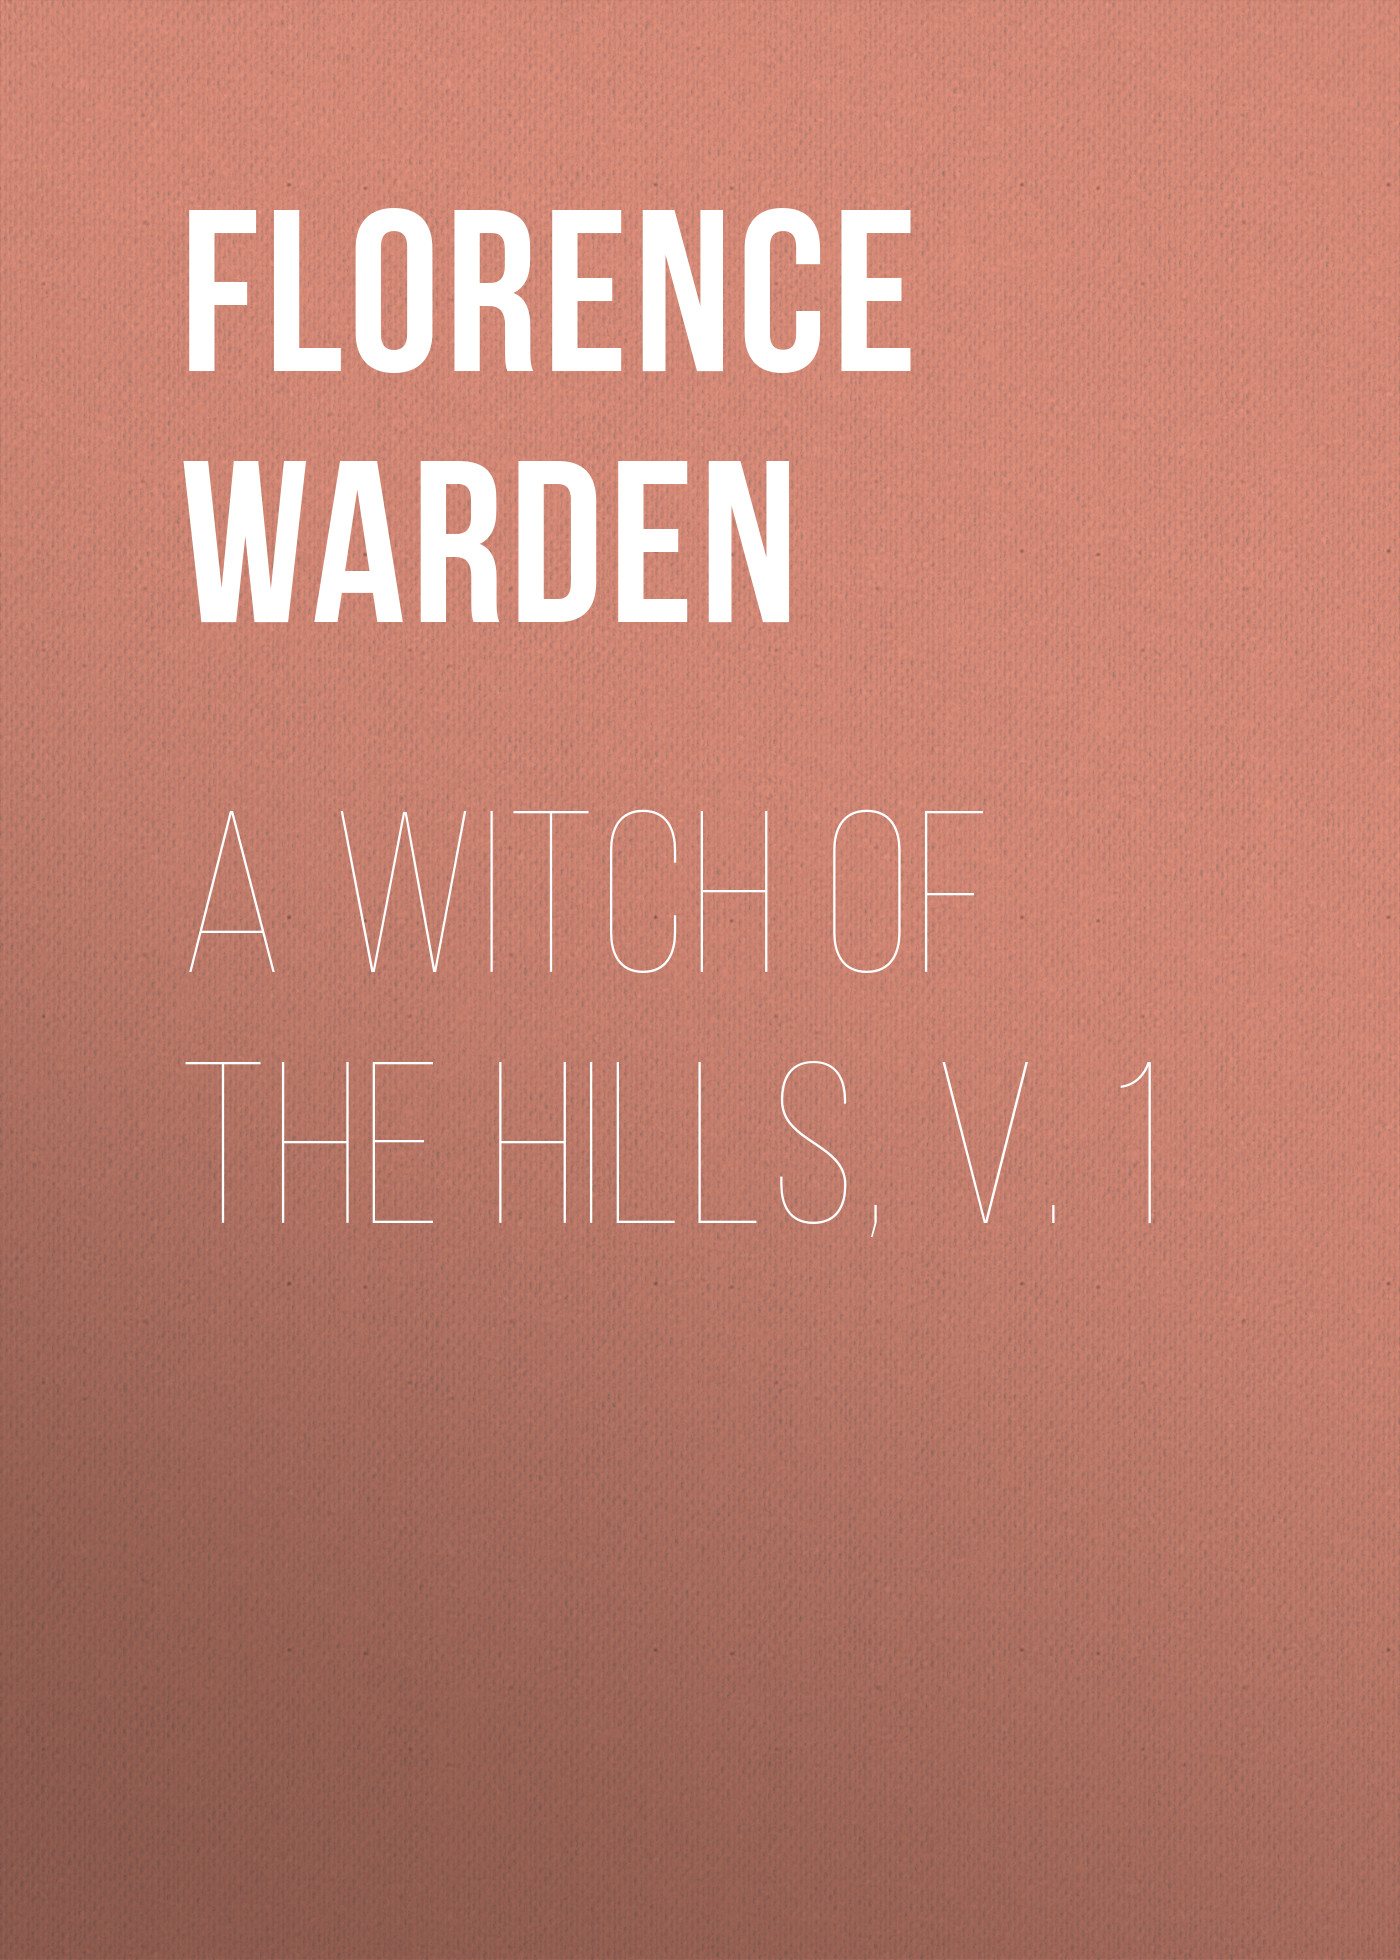 Florence Warden A Witch of the Hills, v. 1 цена 2017